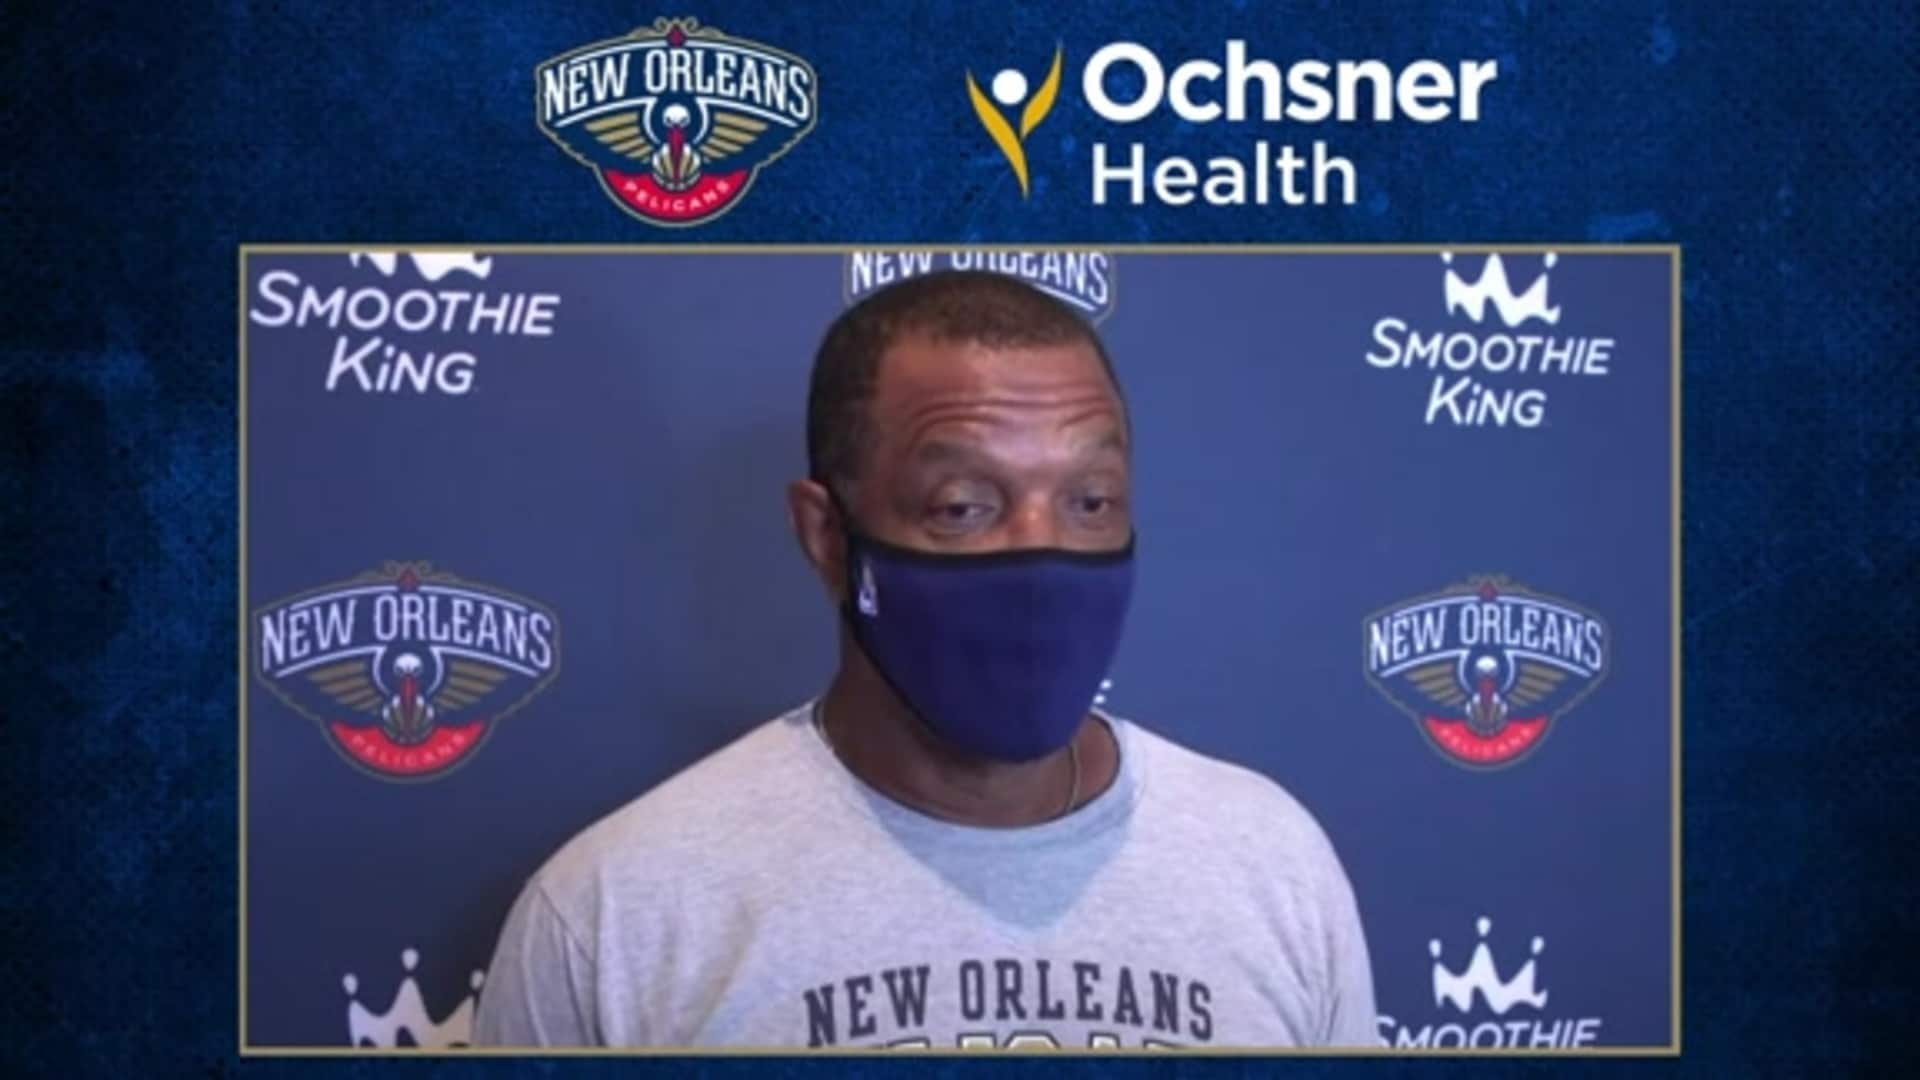 Alvin Gentry talks limiting turnovers, keys to success vs. Grizzlies | Ochsner Pelicans Practice